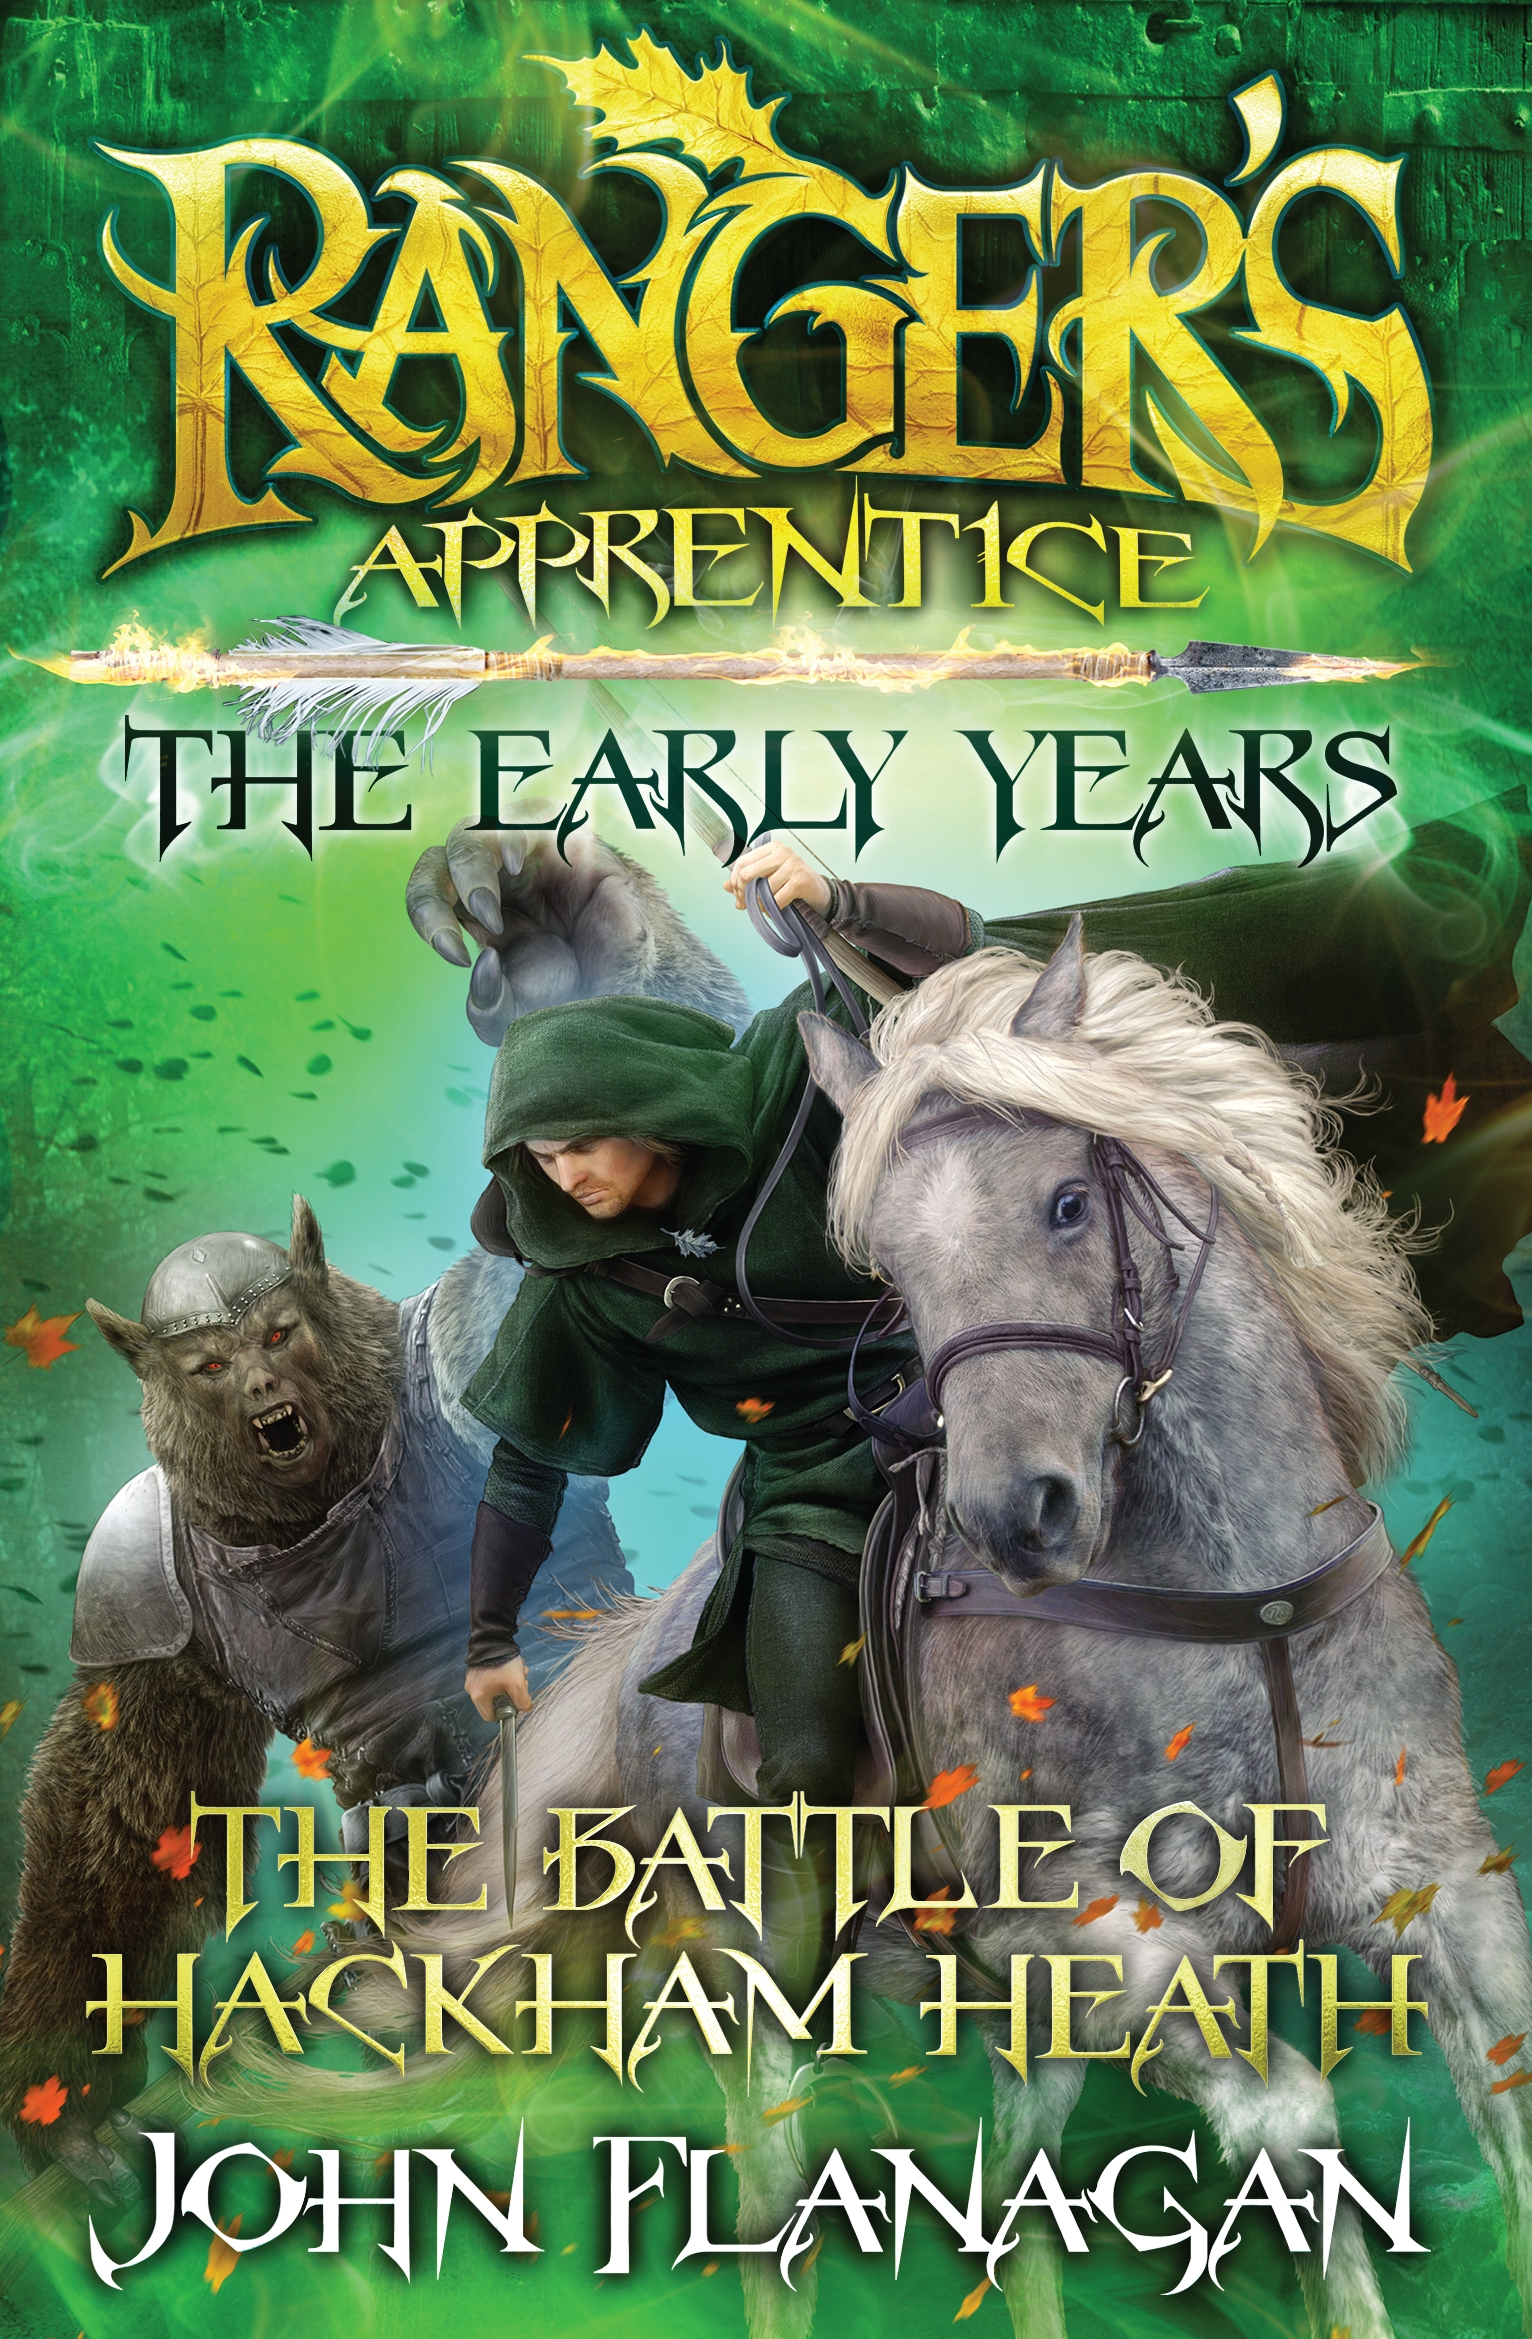 Ranger's Apprentice The Early Years 2: The Battle of Hackham